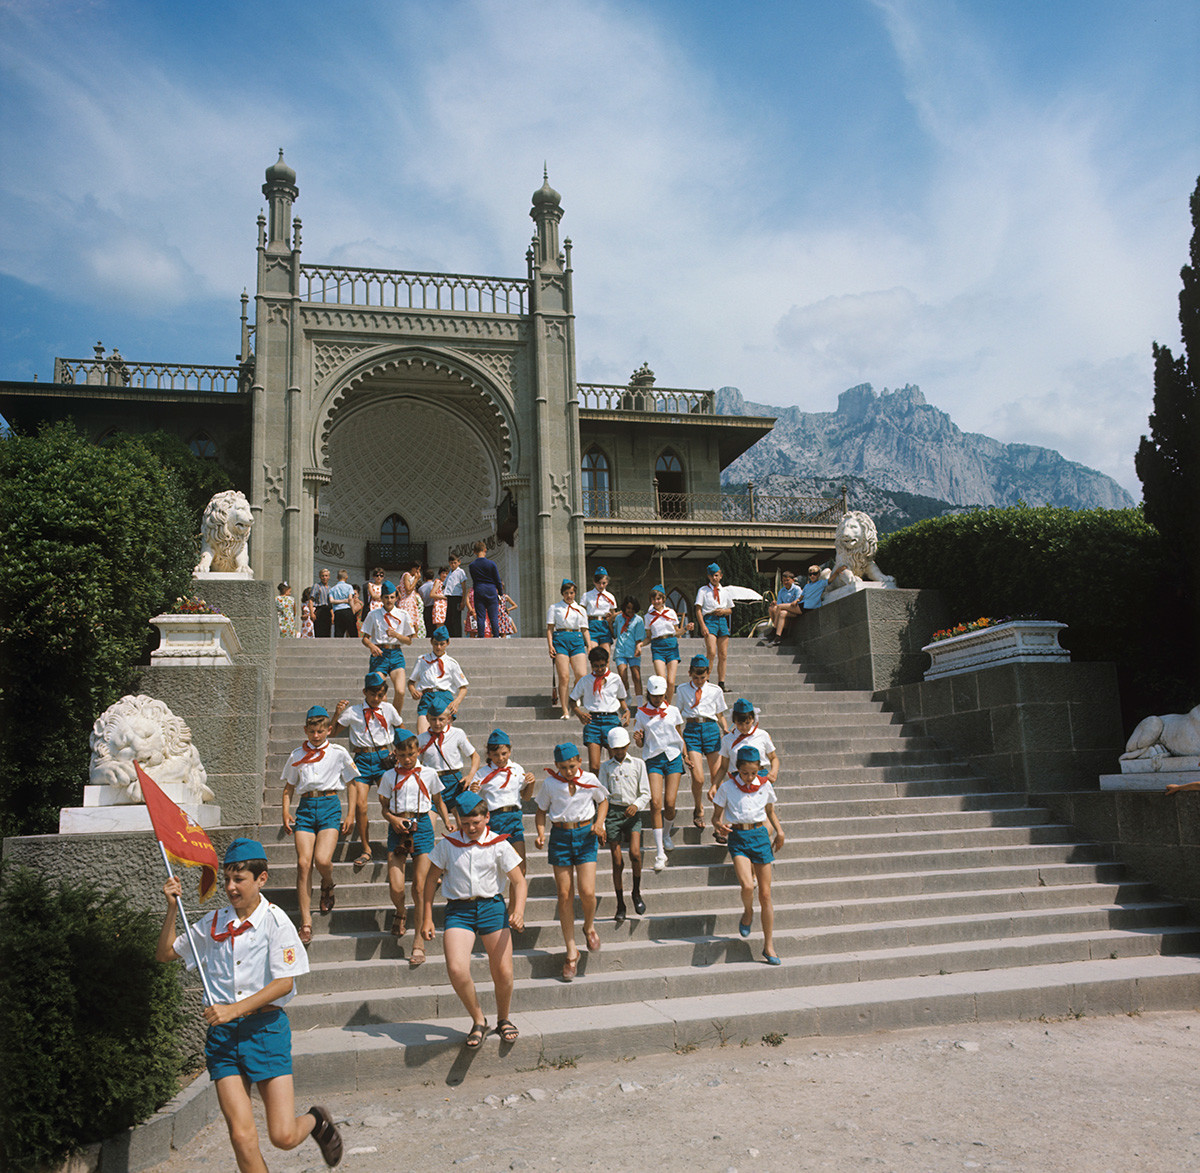 Pioneers on an excursion to Vorontsov Palace, Crimea, 1970